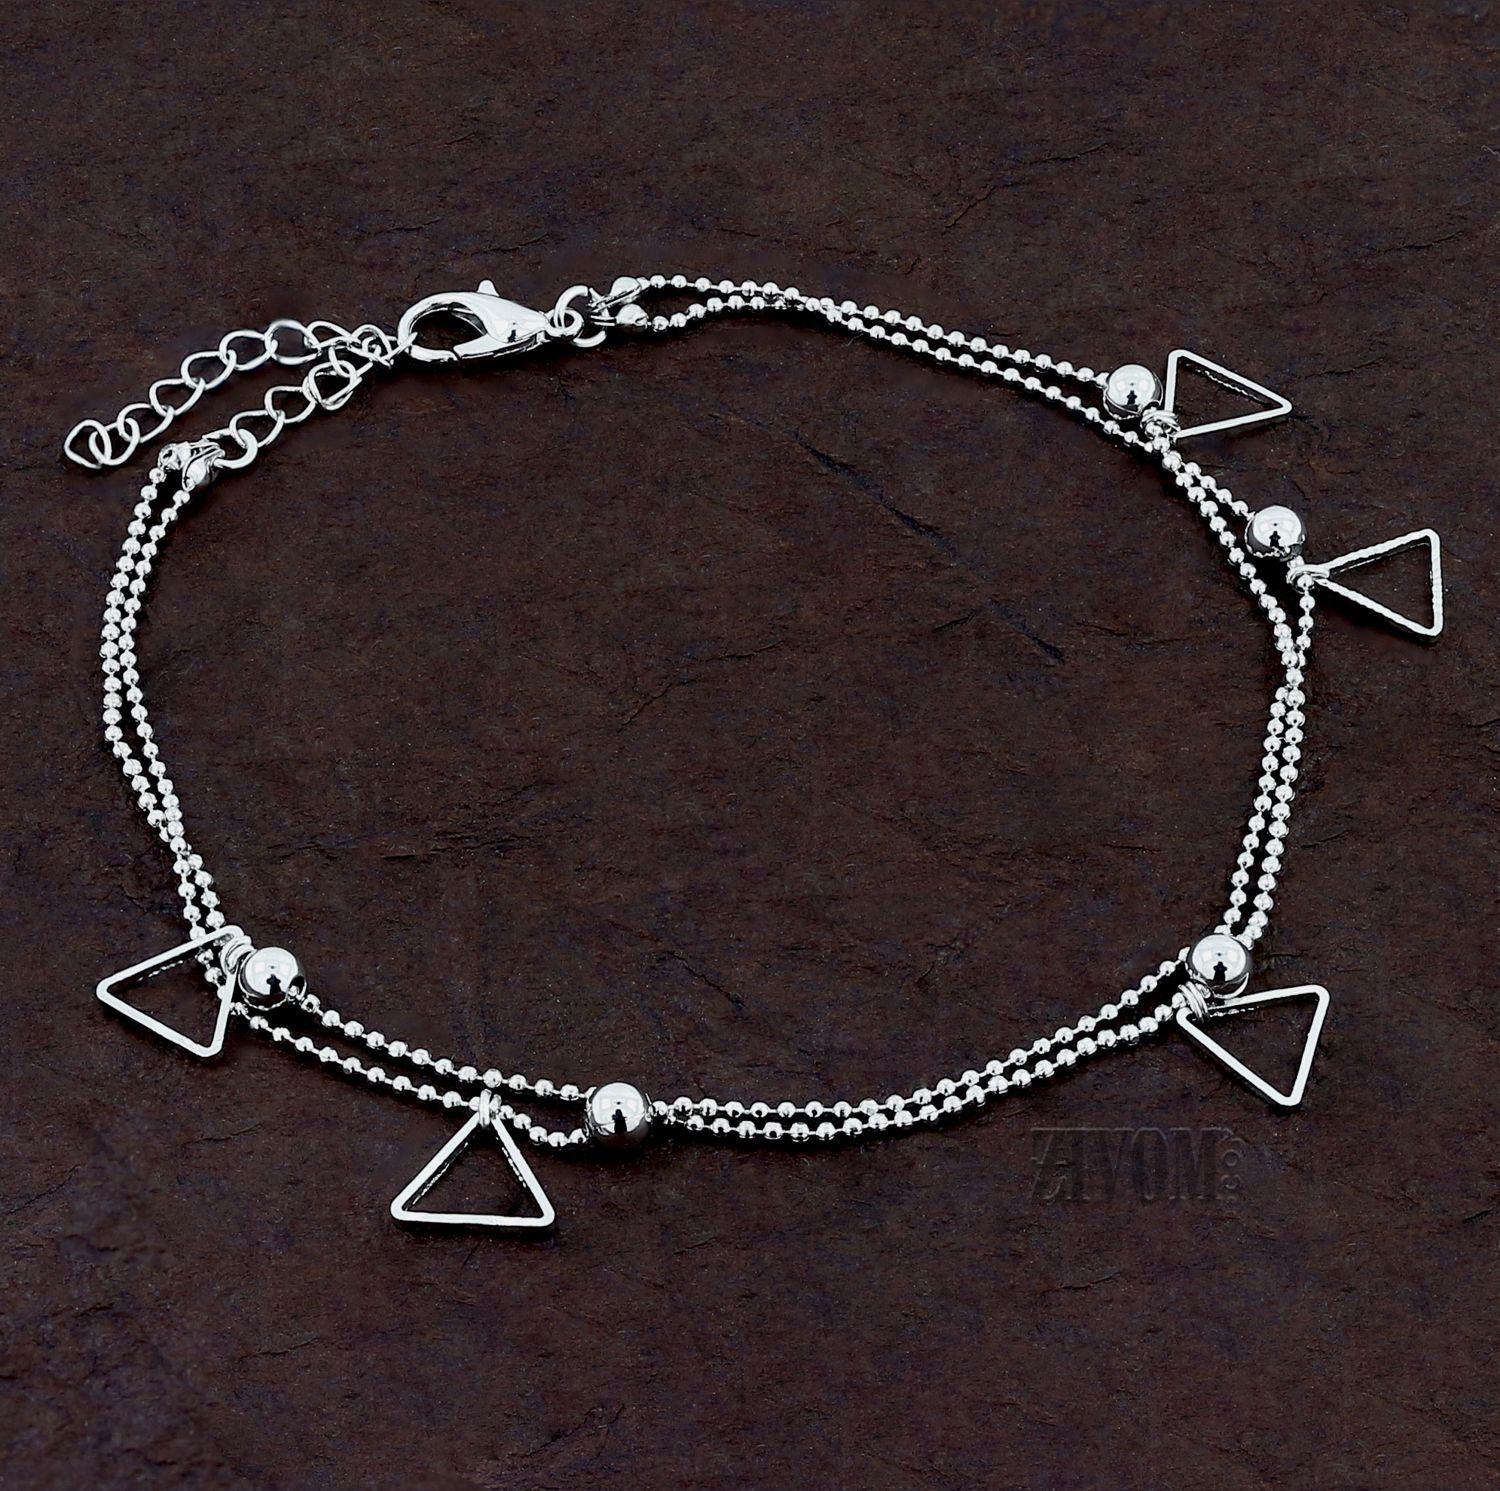 Zivom® Triangle Stylish Indo Western Dainty Delicate Charms Single Leg Anklet Payal for Women Girls